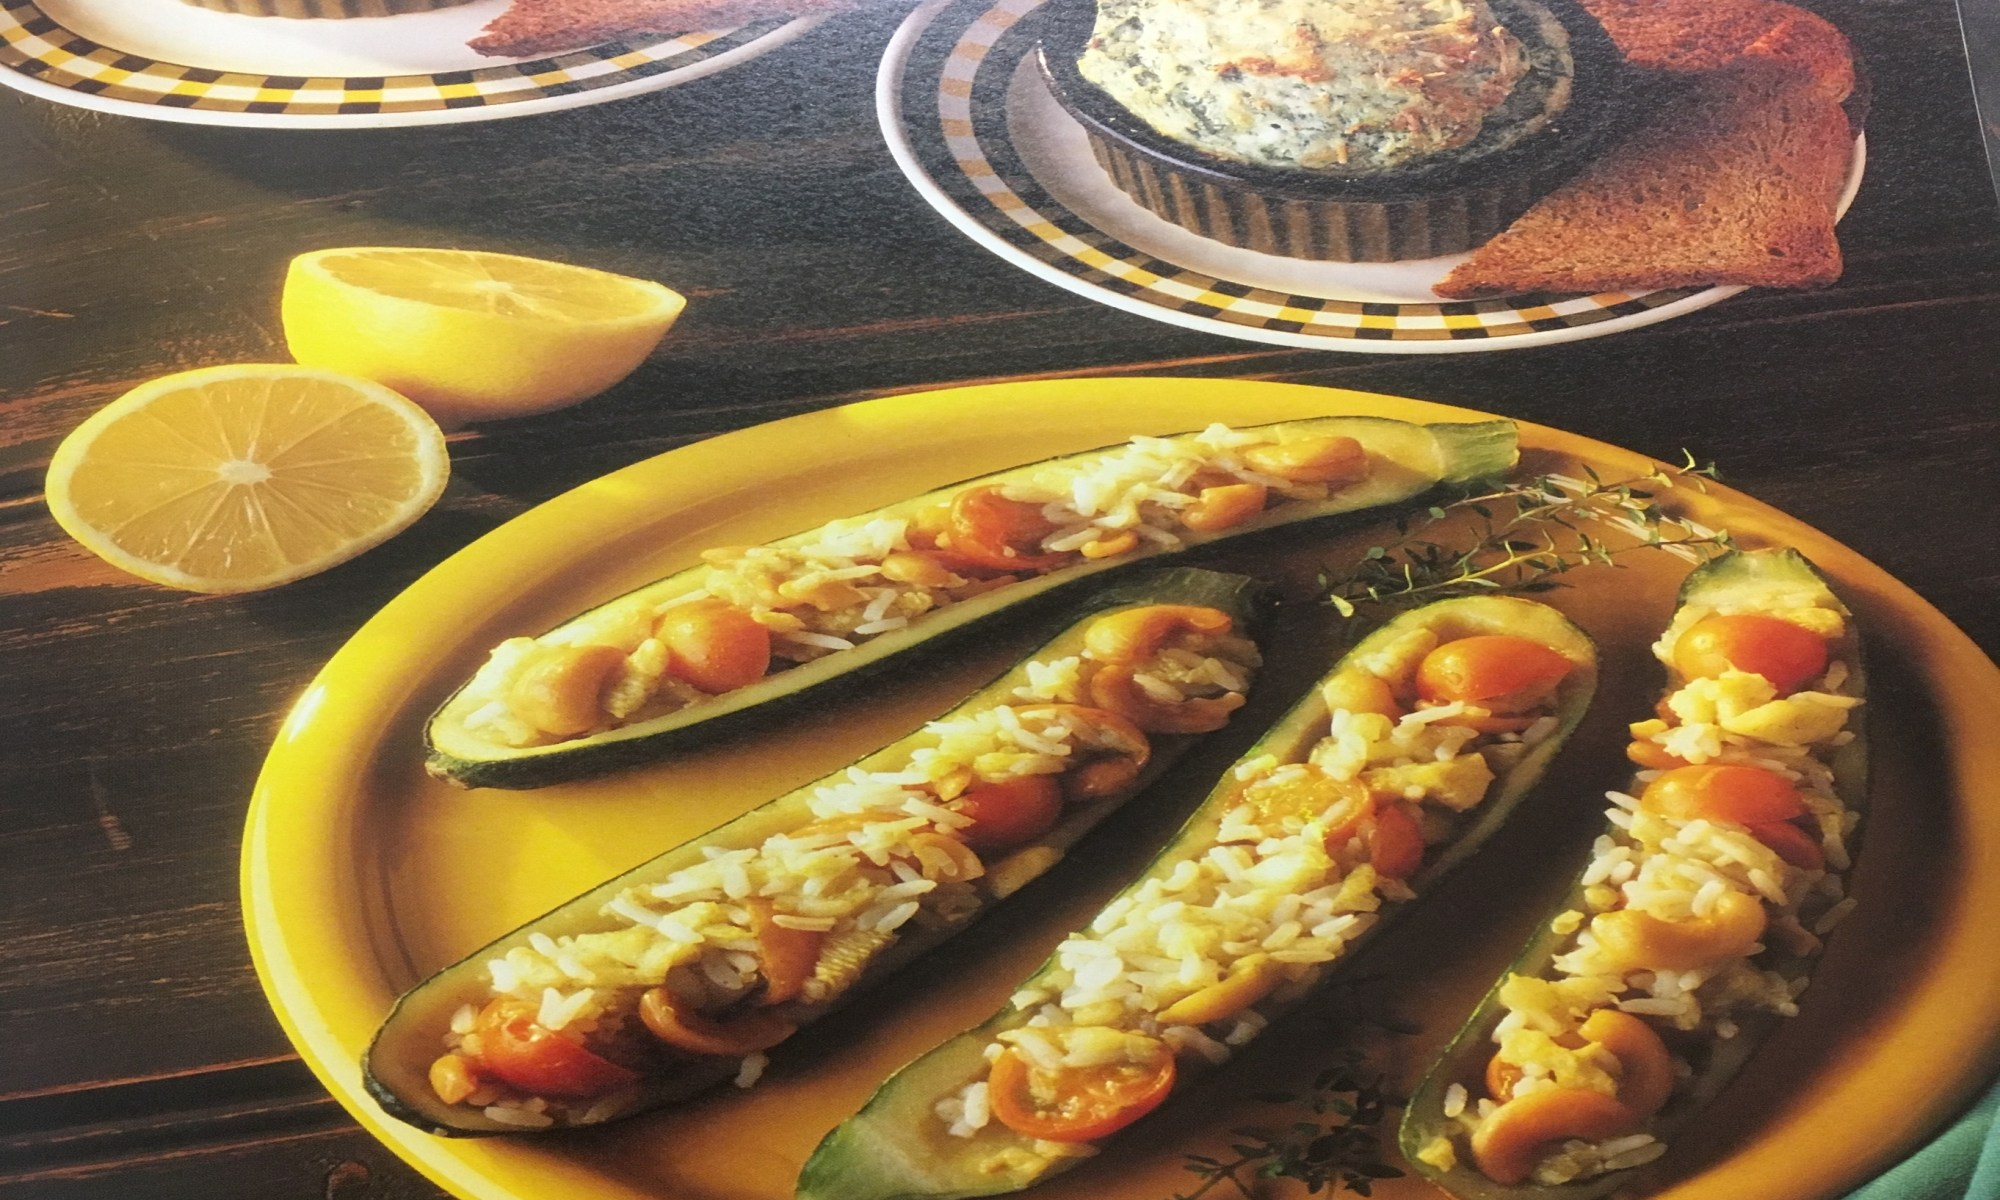 Lemony stuffed zucchini recipe